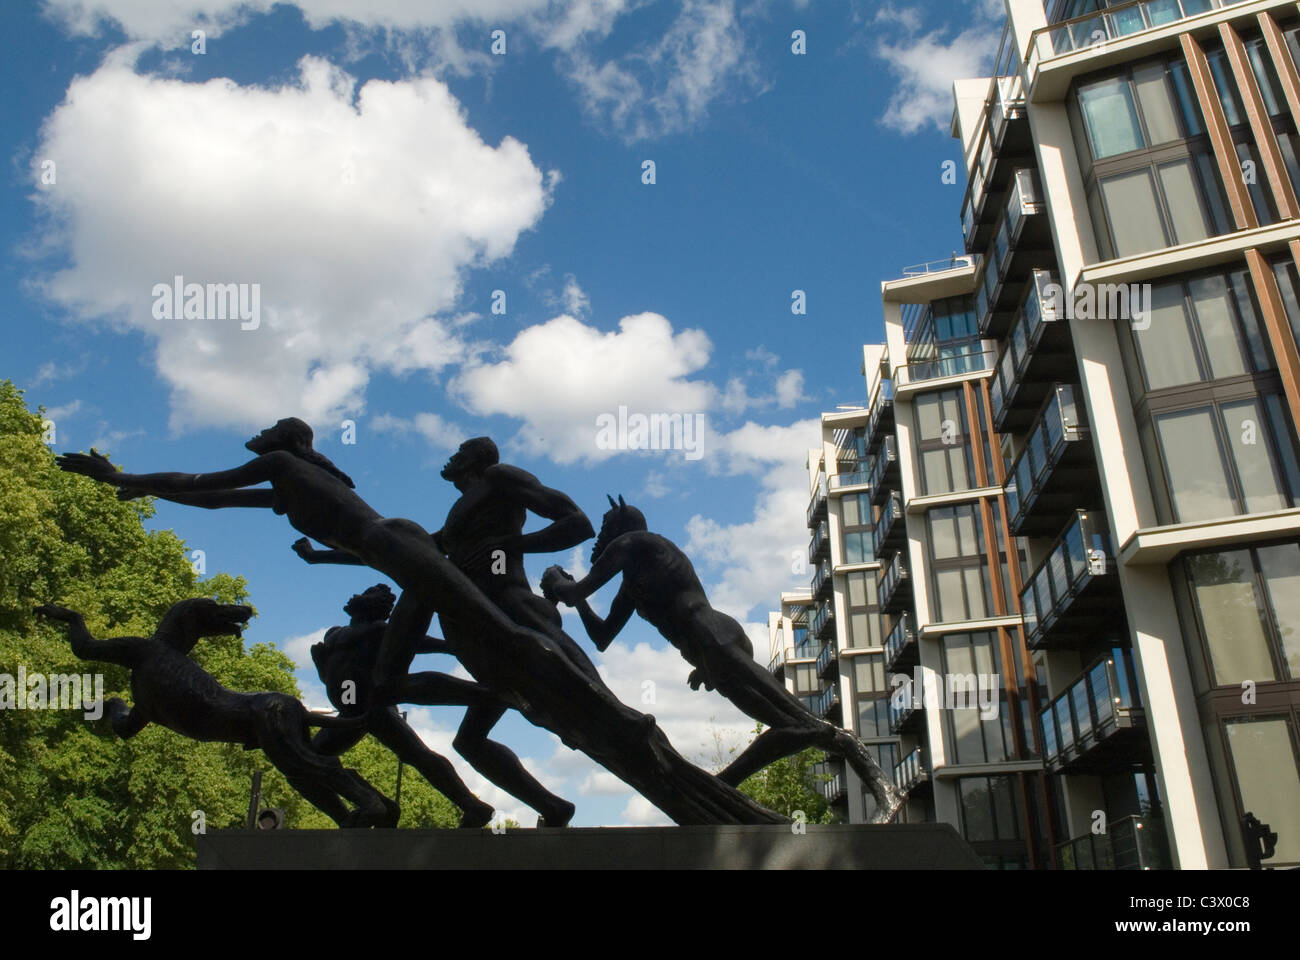 One Sir Stock Photos & One Sir Stock Images - Alamy